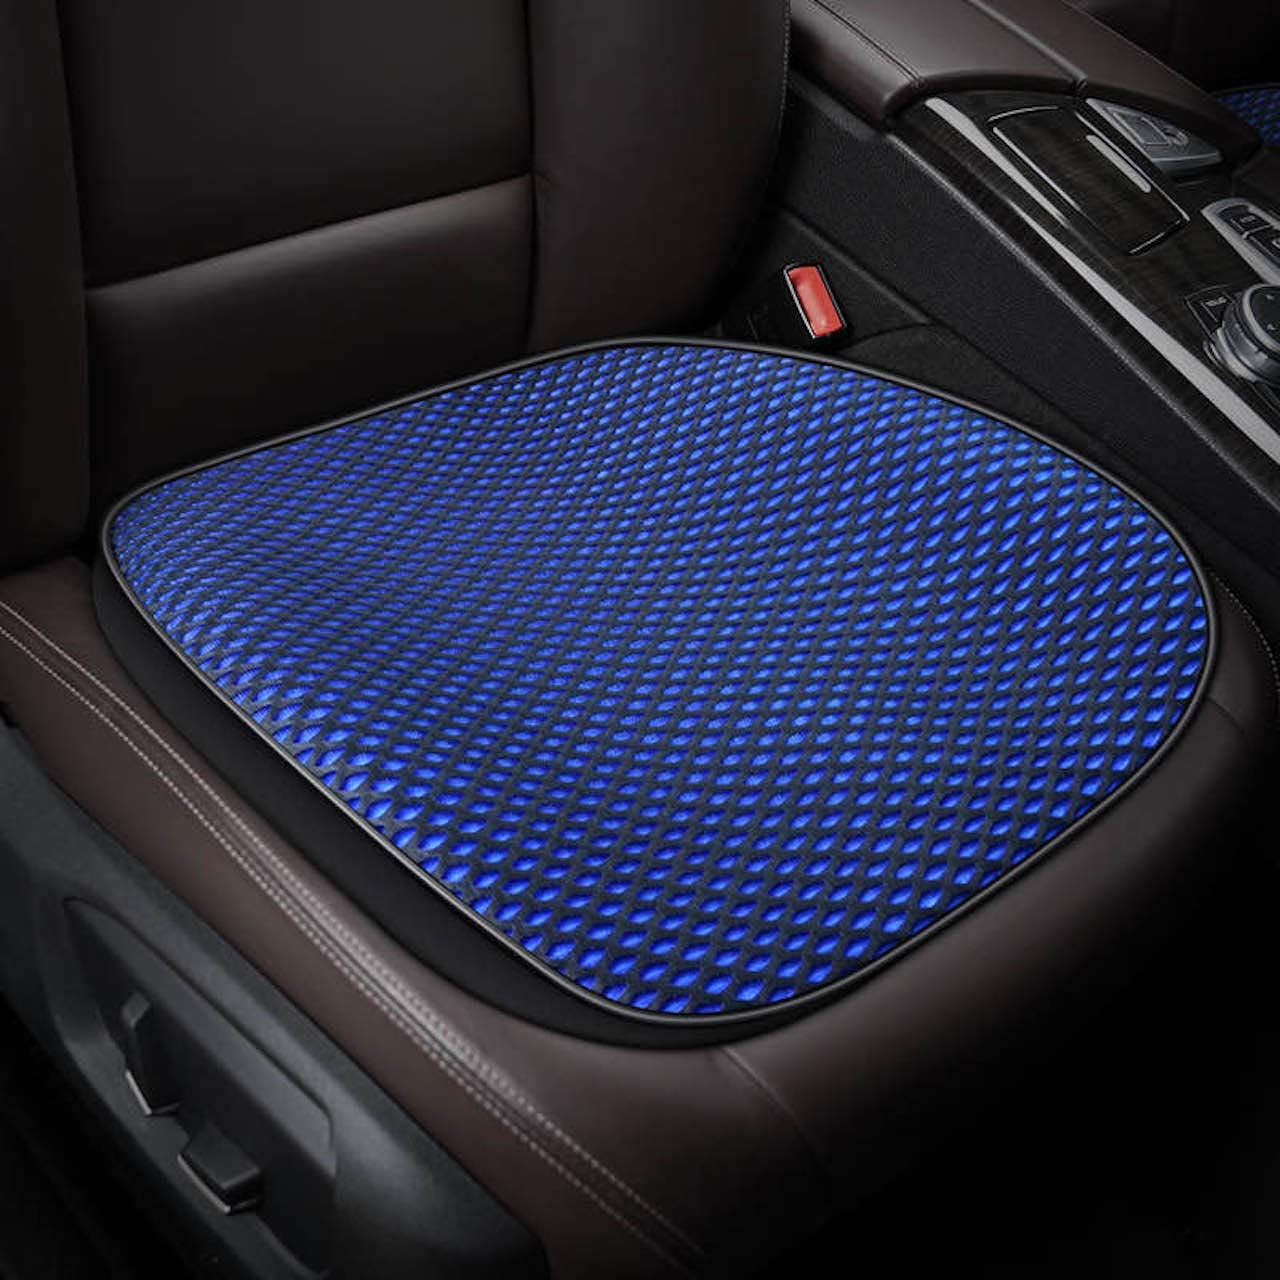 Eaglet Cooling Car Seat Cushion, Multi-Use Universal Seat Cushion with Breathable 3D Stereo Mesh Cover, Cooling Gel, Anti-Slip Backing, Ice Pad for Support in Car, Office, Home, and Outdoor (Blue)